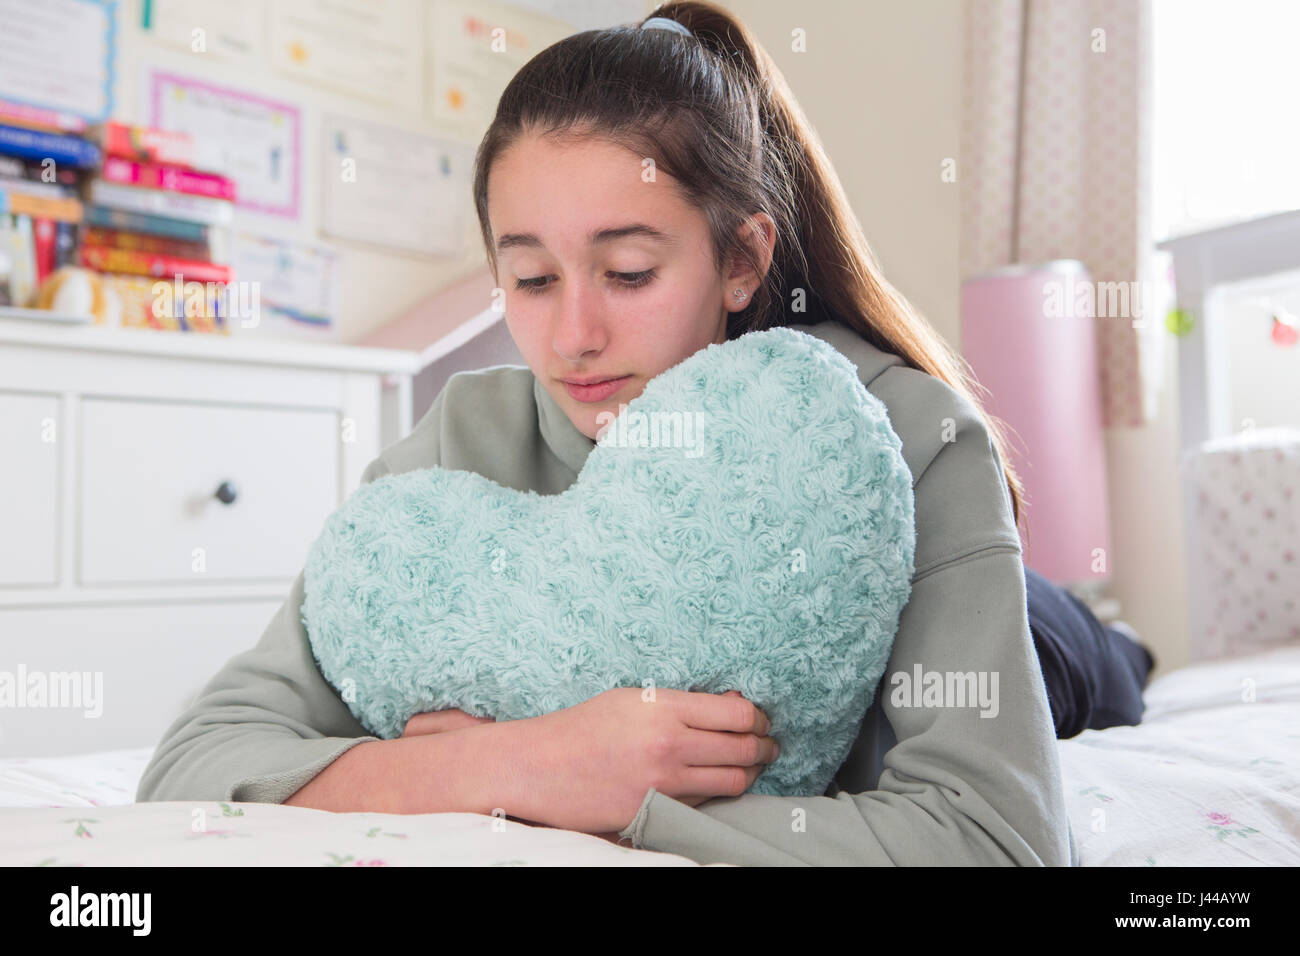 Young Girl Lying On Bed coussin en forme de coeur Hugging Photo Stock